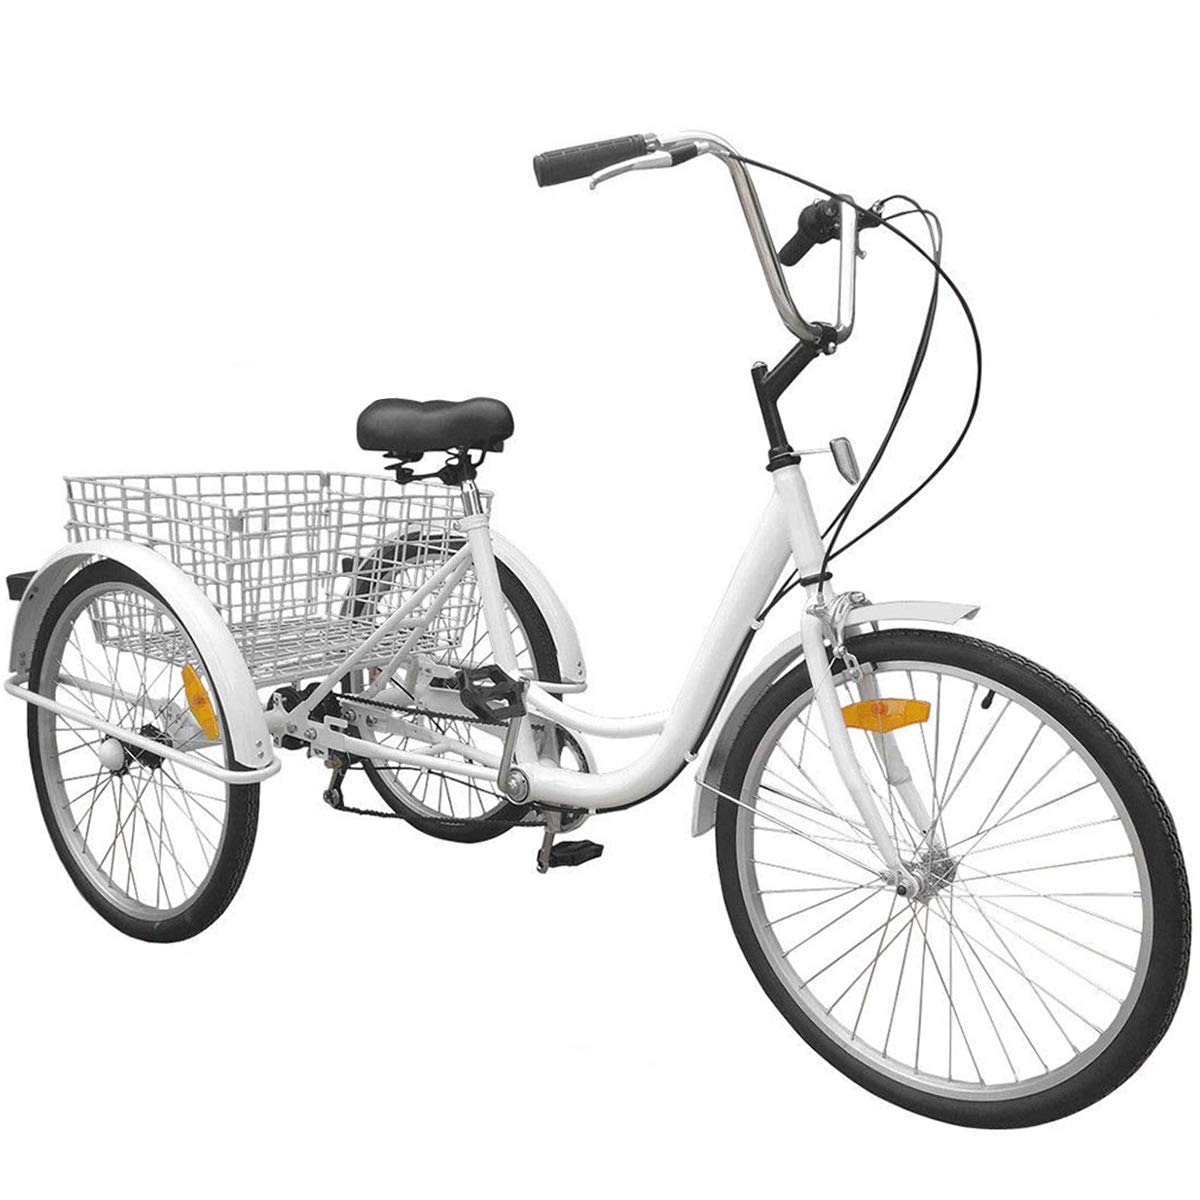 Affordable adult tricycle 350 lb capacity foto 90